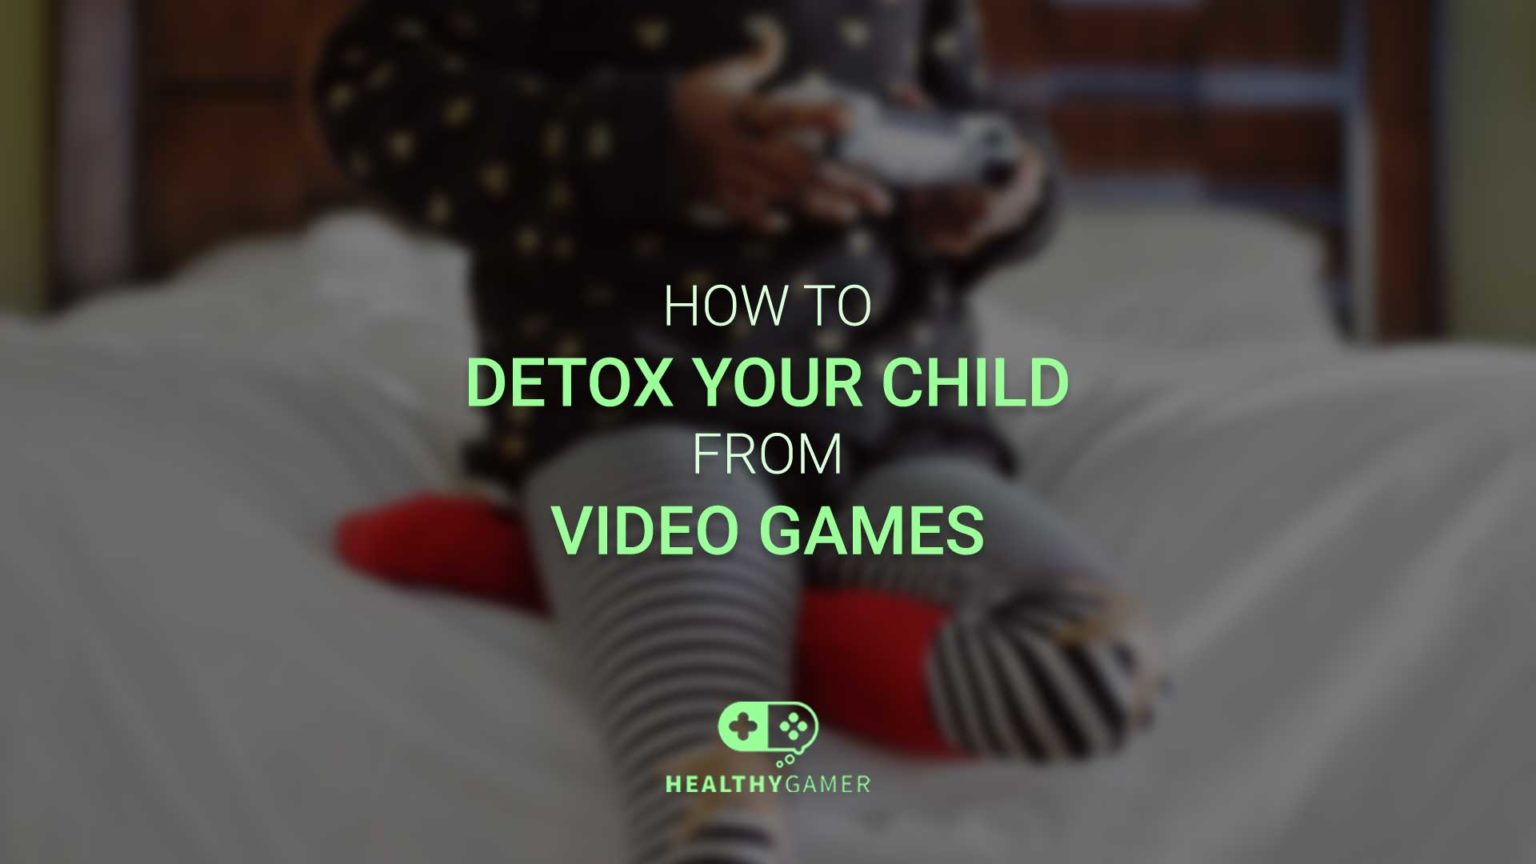 How to Detox Your Child From Video Games